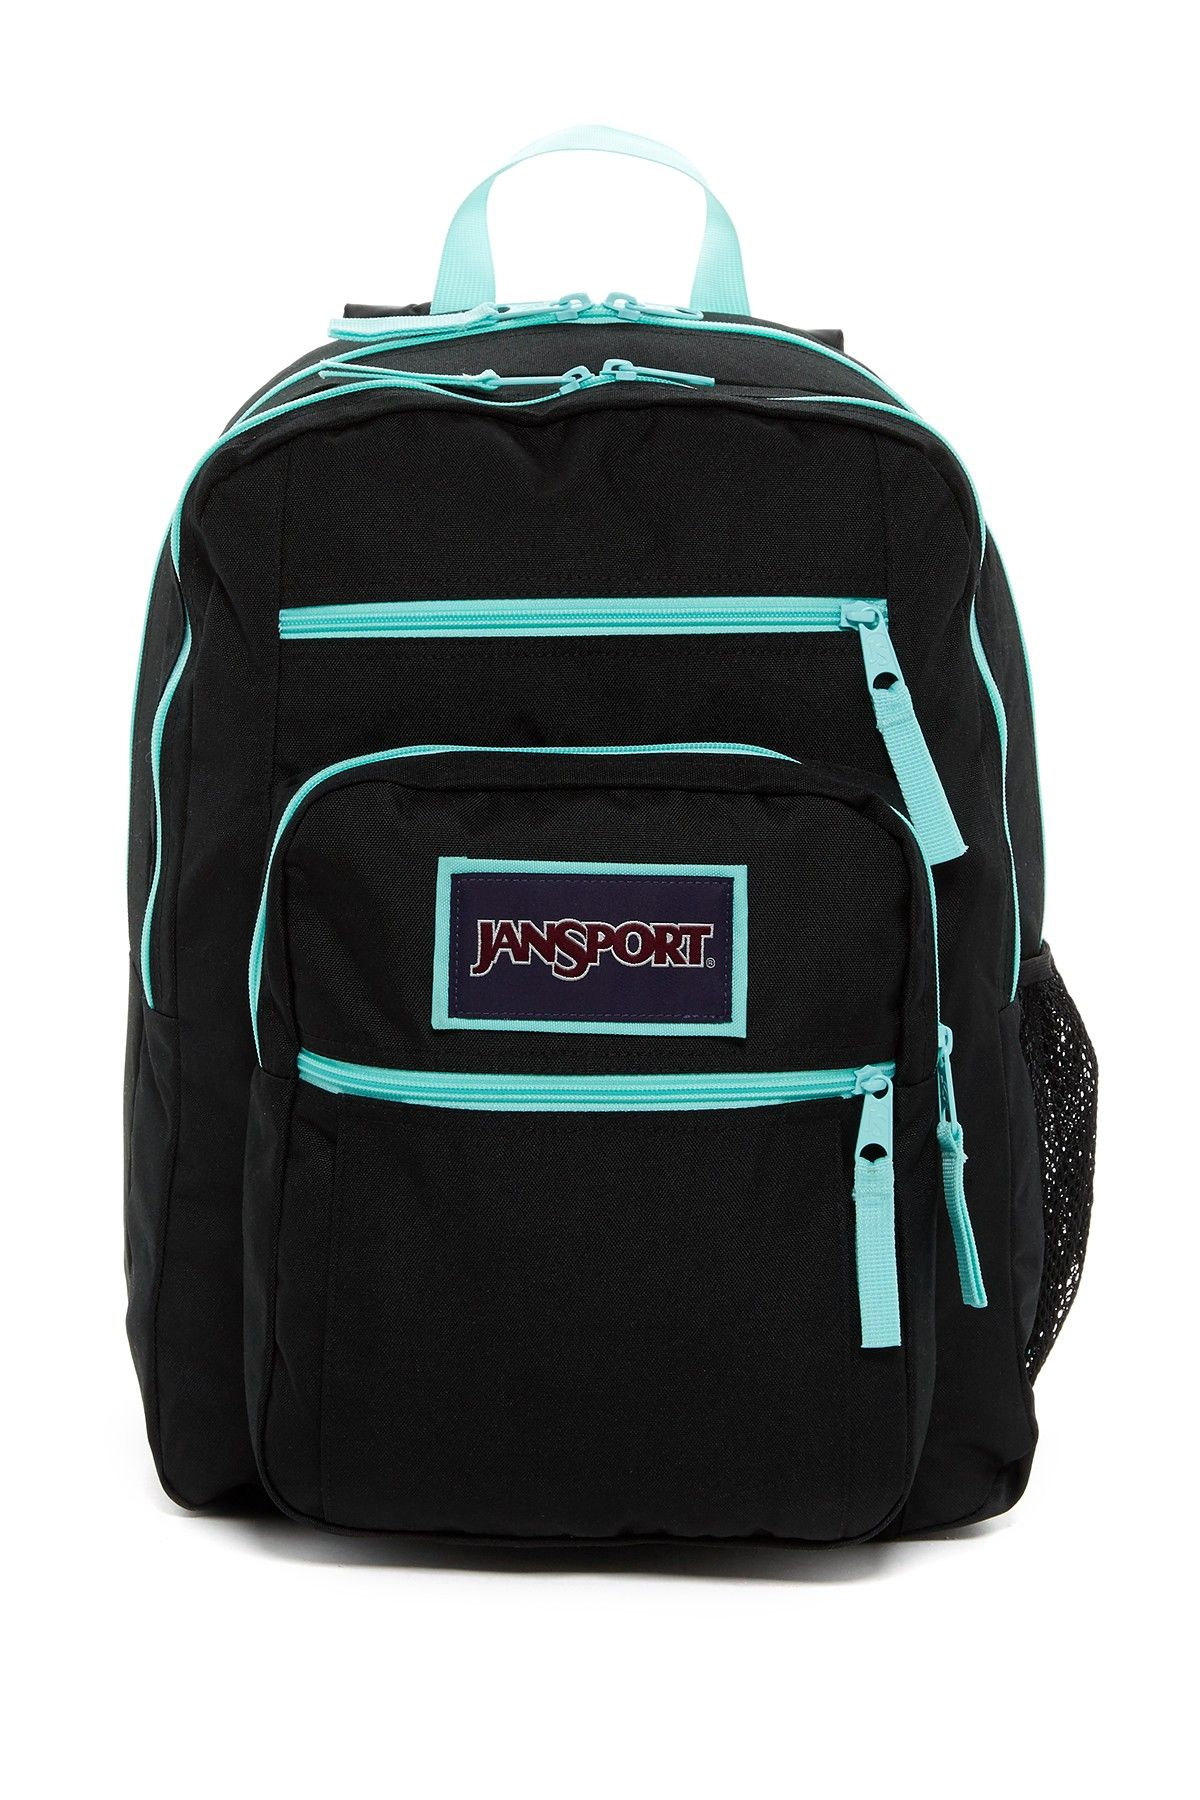 campus style 6 cute backpacks for college 2017 jansport